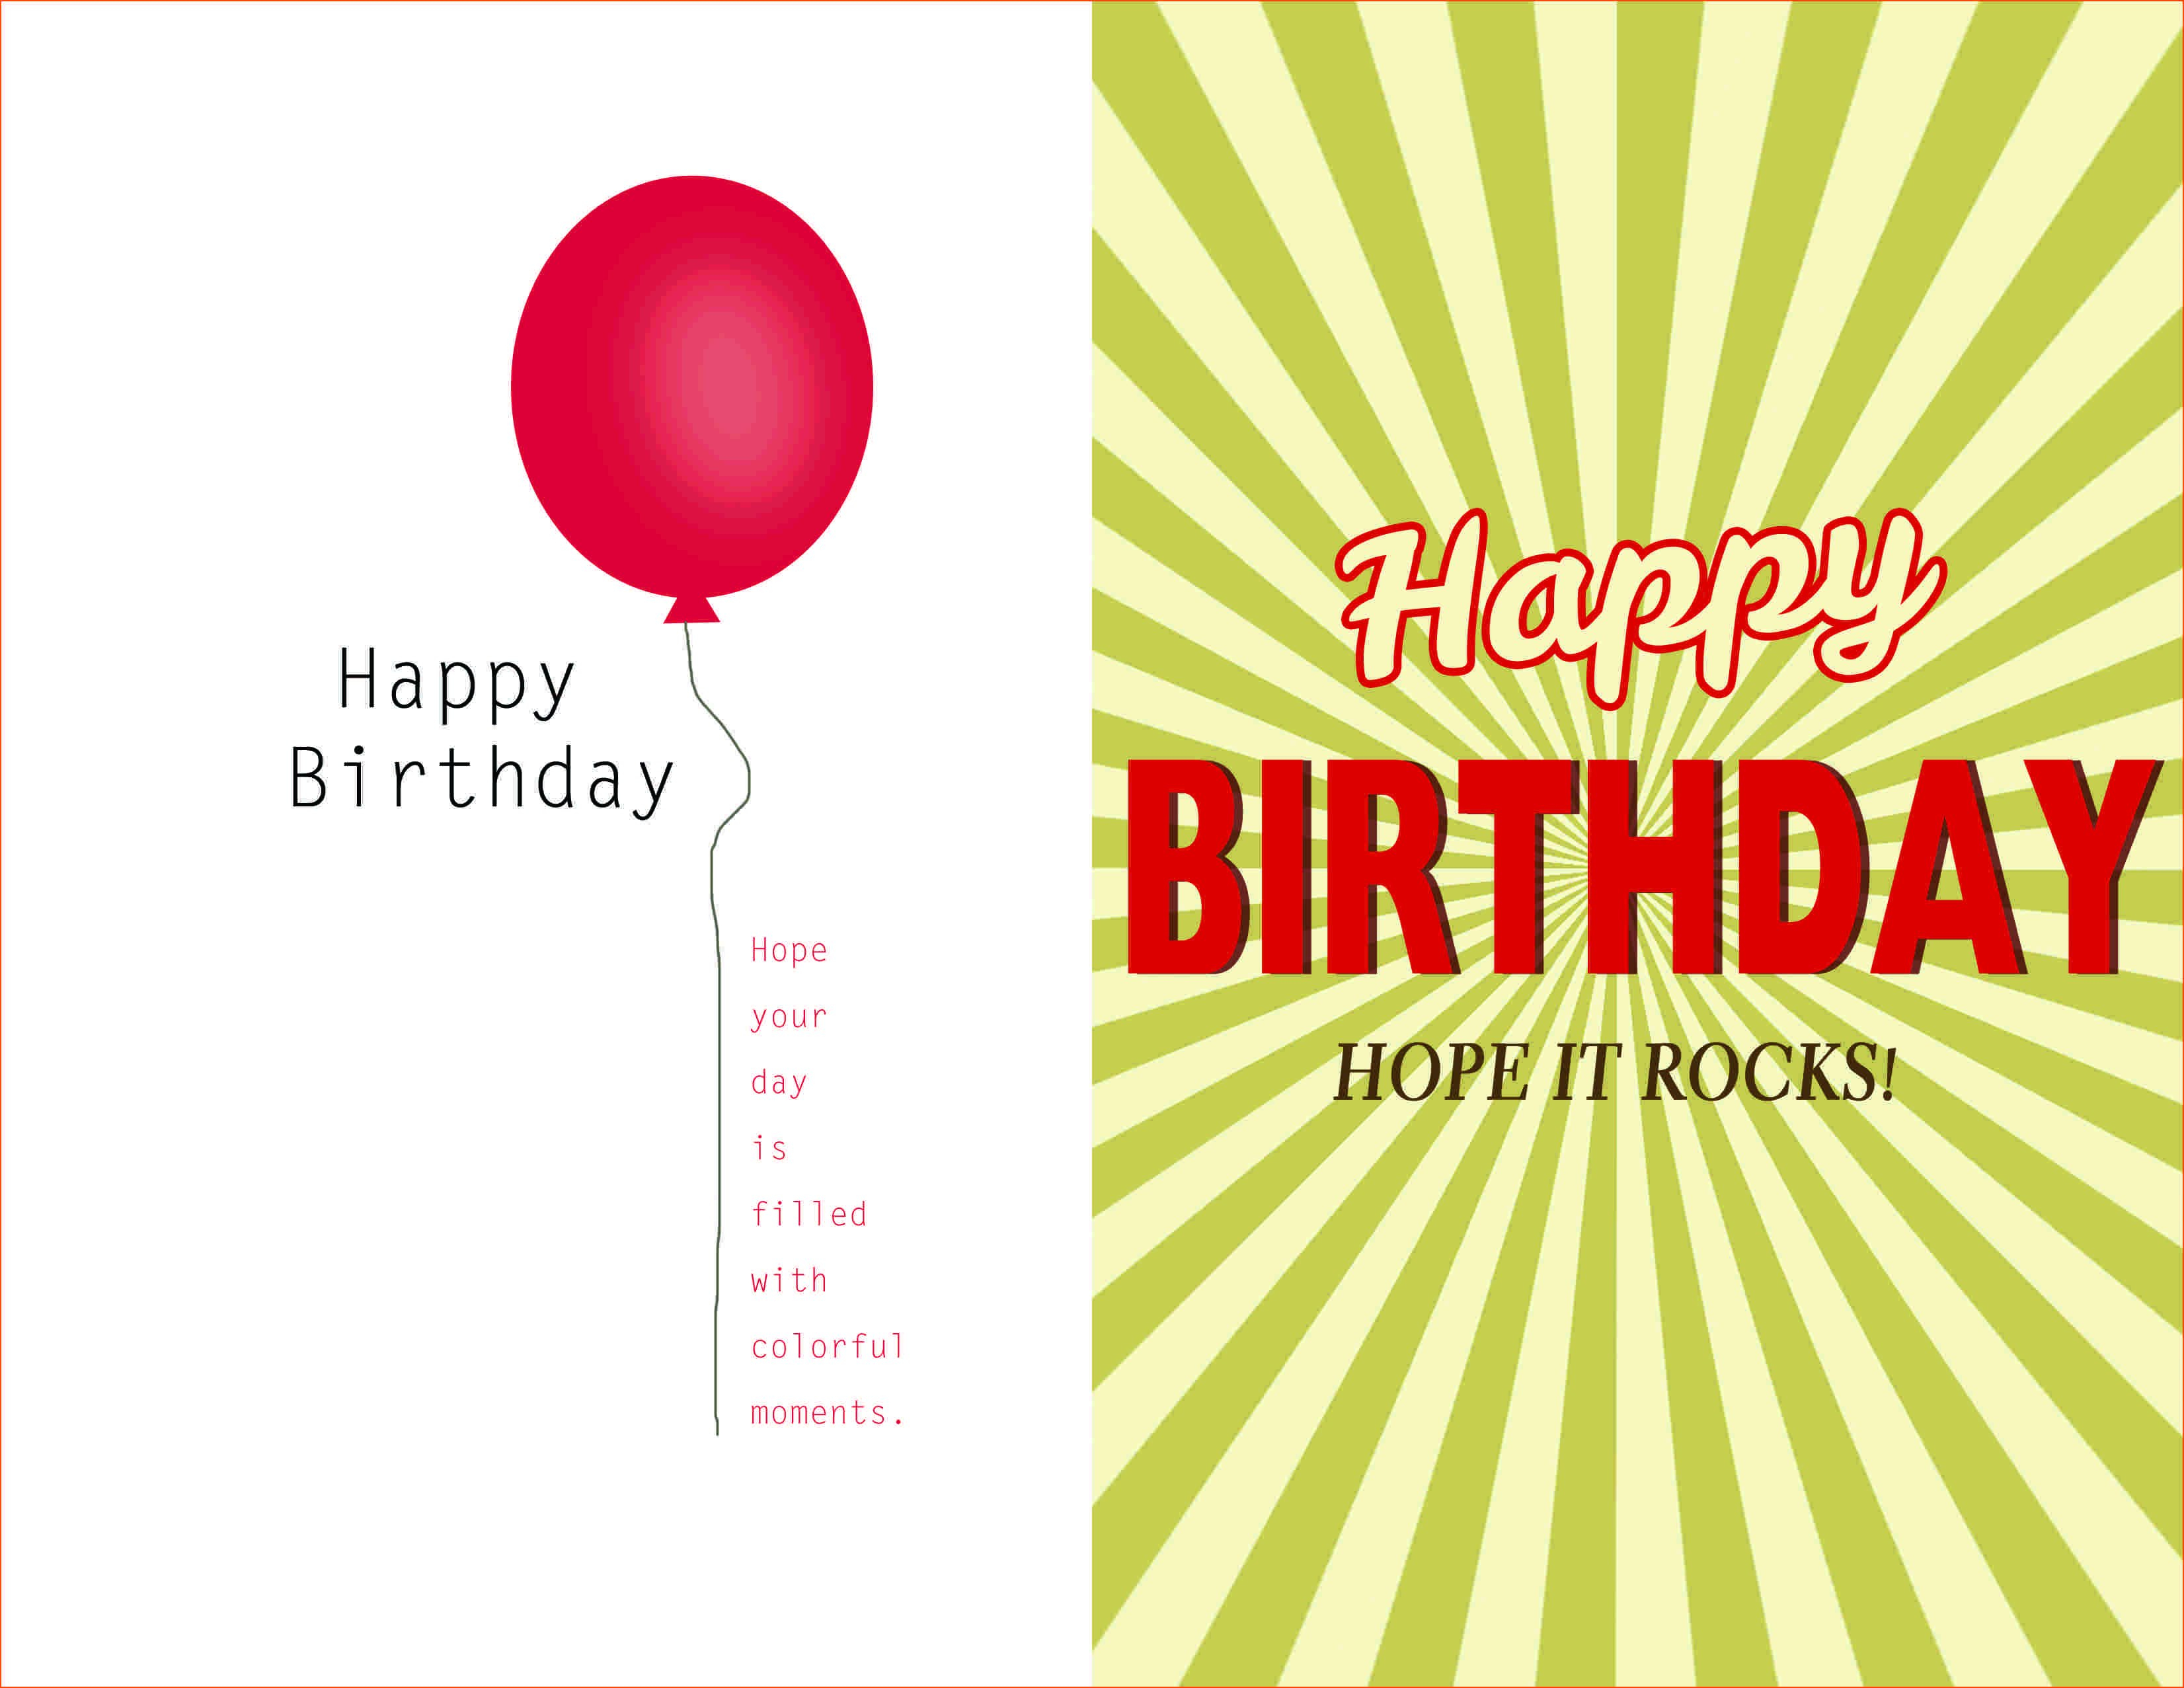 Birthday Card Template Word Document  Blank Microsoft Text Within Birthday Card Template Microsoft Word